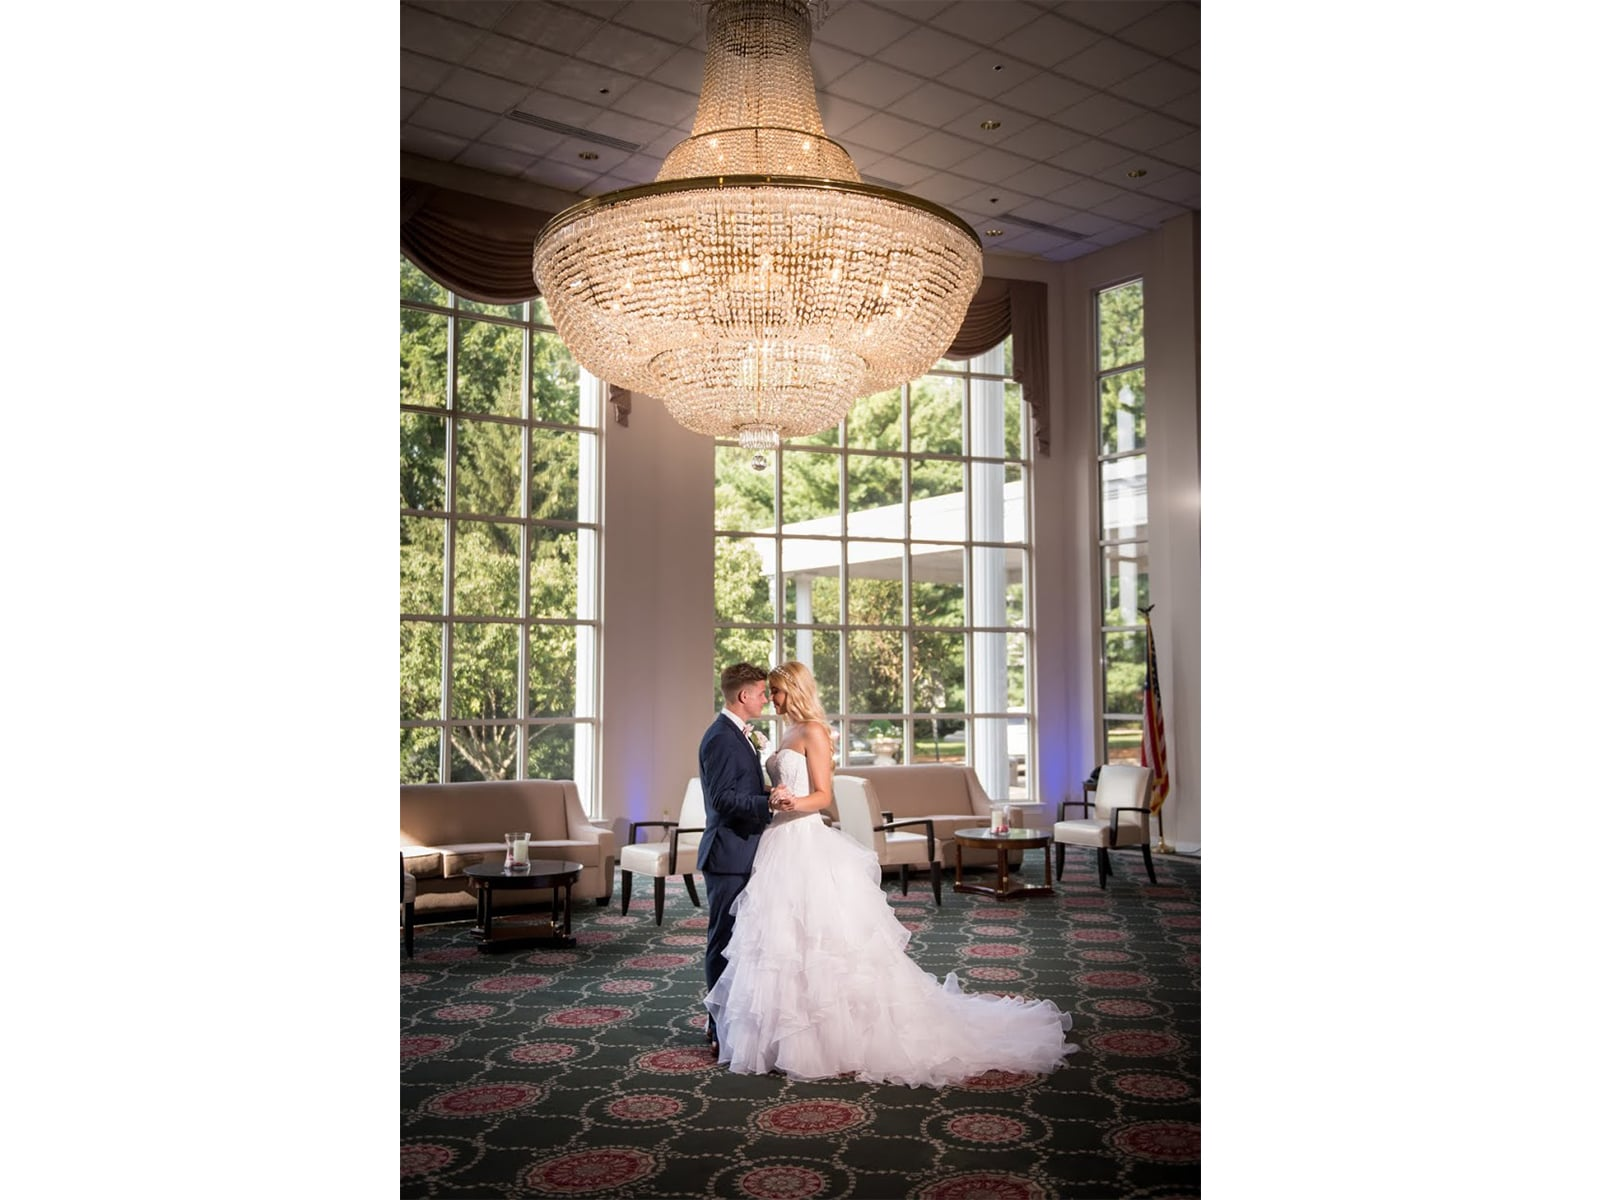 Husband and wife dancing under a chandelier at a Presidential Catering wedding.